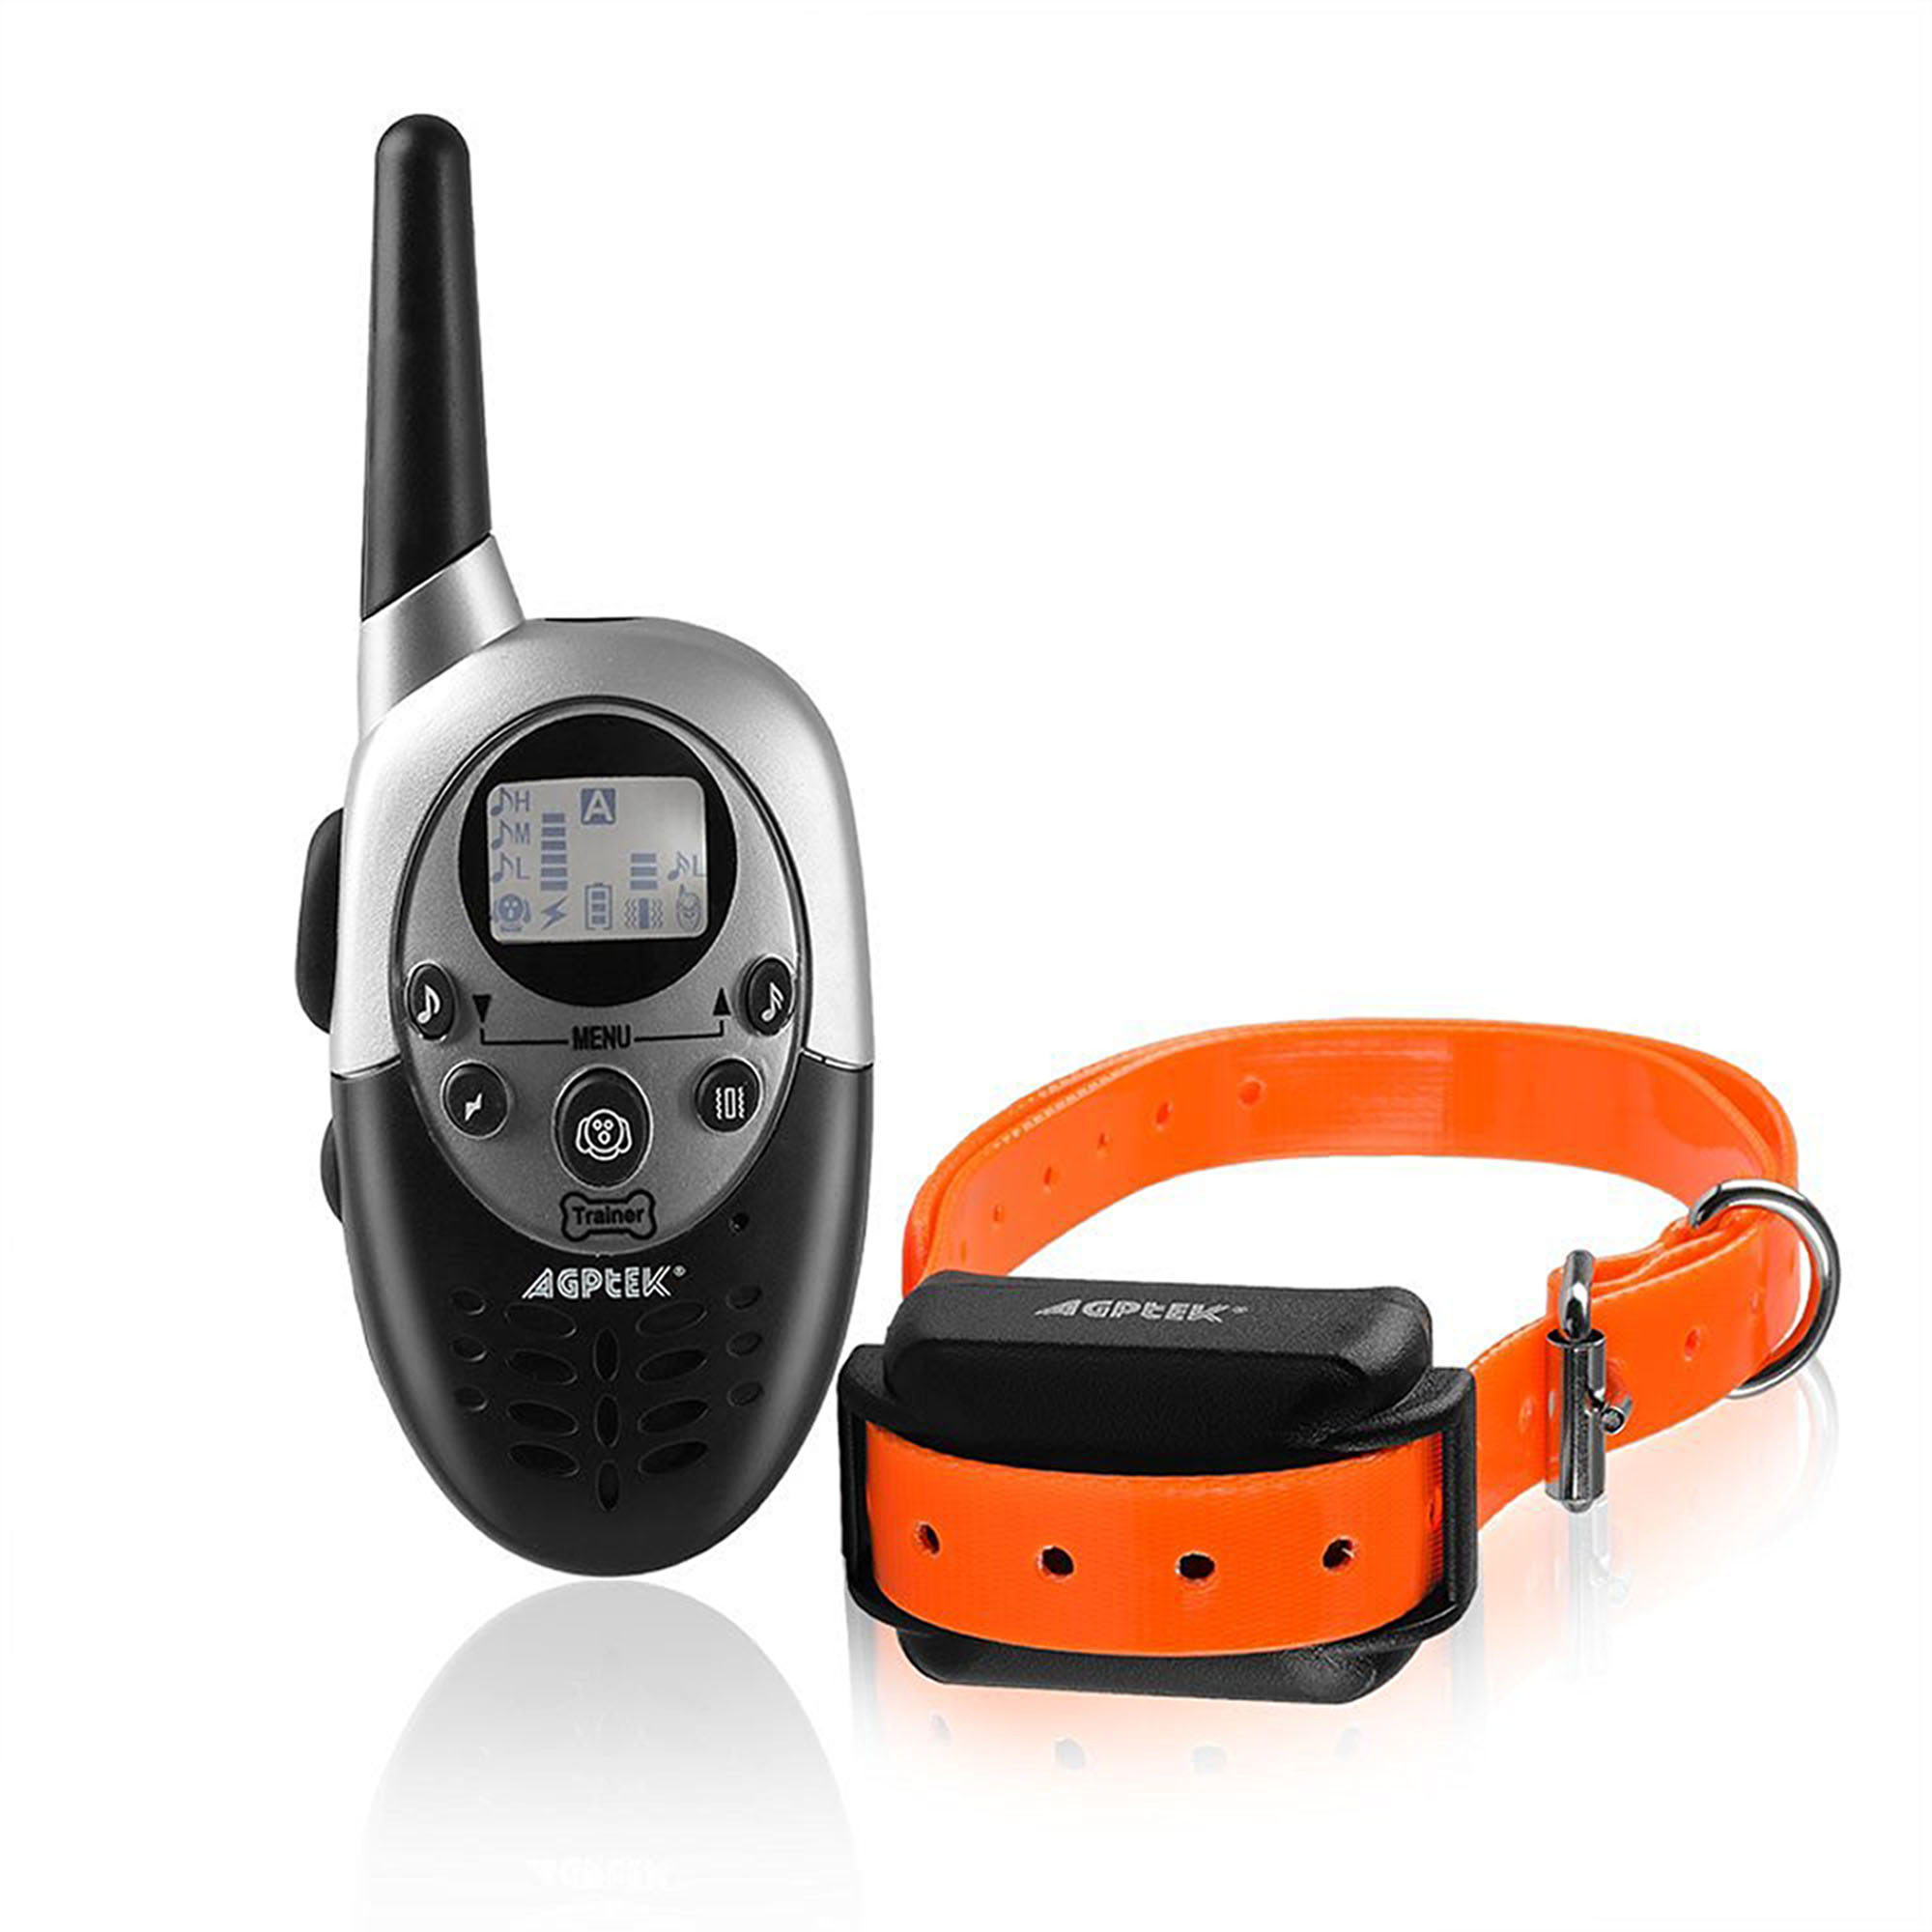 AGPtek Rainproof Dog Shock Training Collar 1000 Yard Vibration Collar w/ Rechargeable Remote